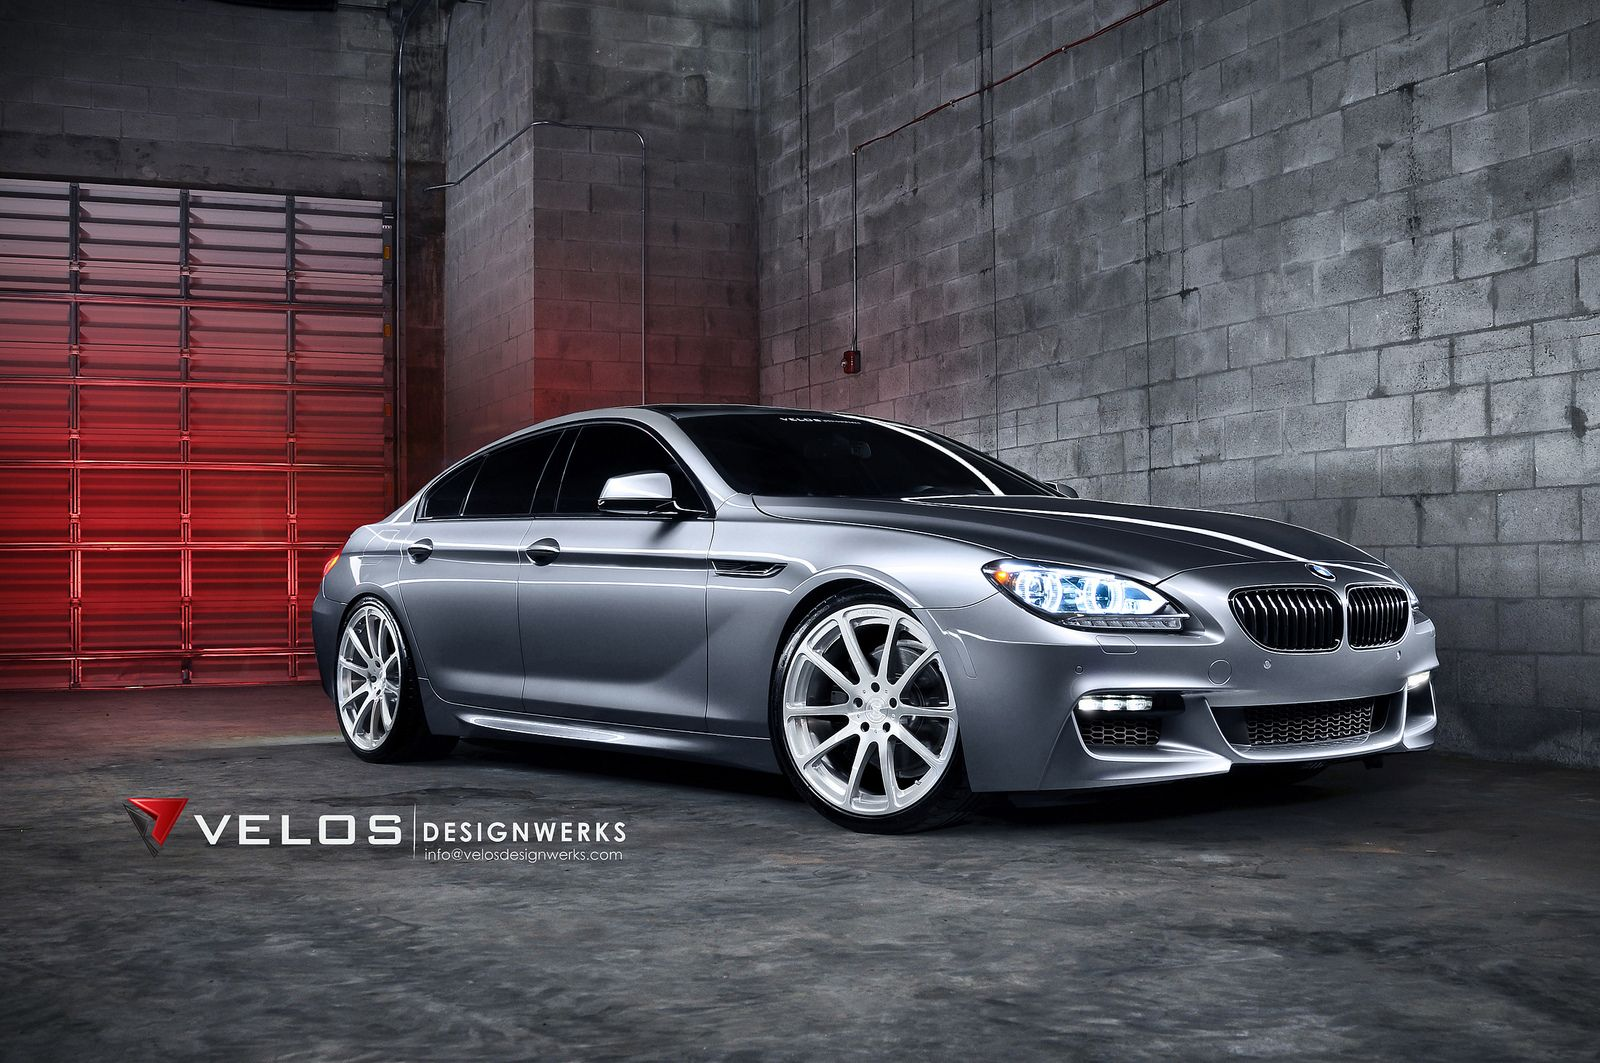 2013 bmw 650i gran coupe - Bing Images | Things I love | Pinterest ...